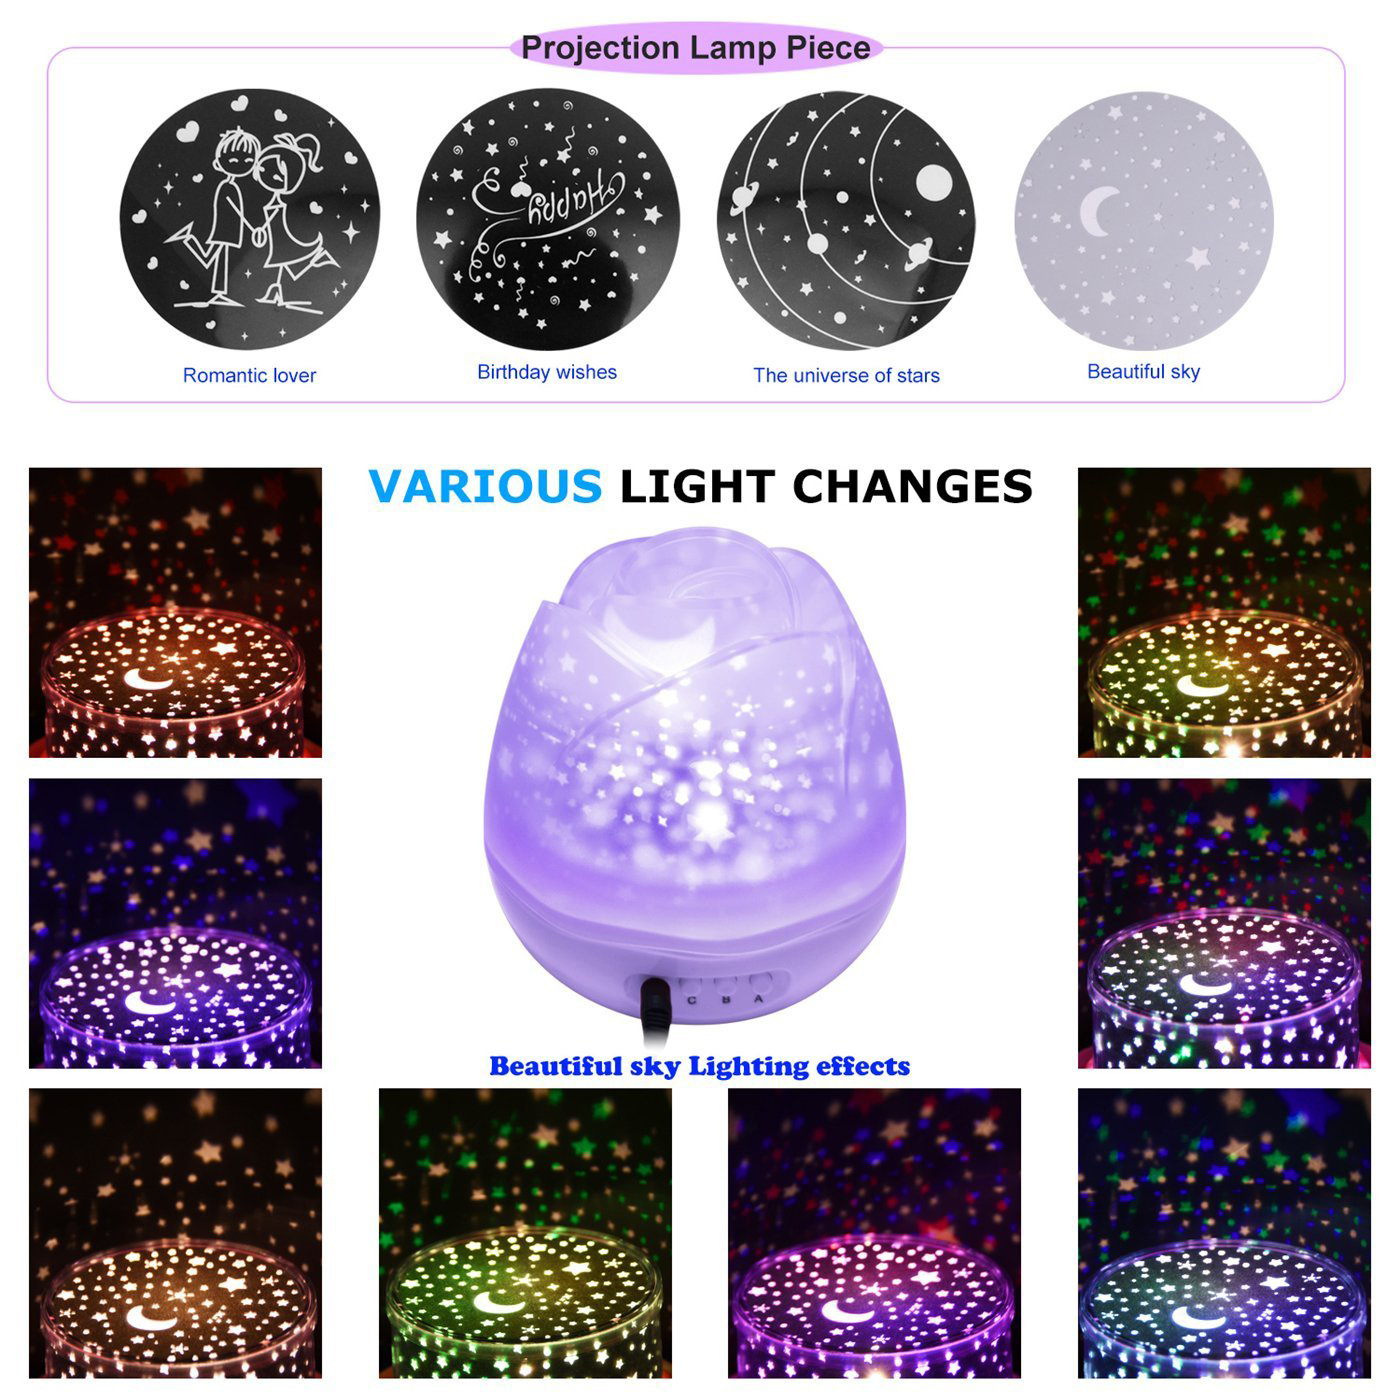 New Star Moon Sky Rotation Night Light Romantic Projector Light Projection with High Quality Kids Bedsides Led Flower Lamp P20 star sky rotation night light romantic projector light projection nightlight kids bedroom led flower lamp lighting effect p20